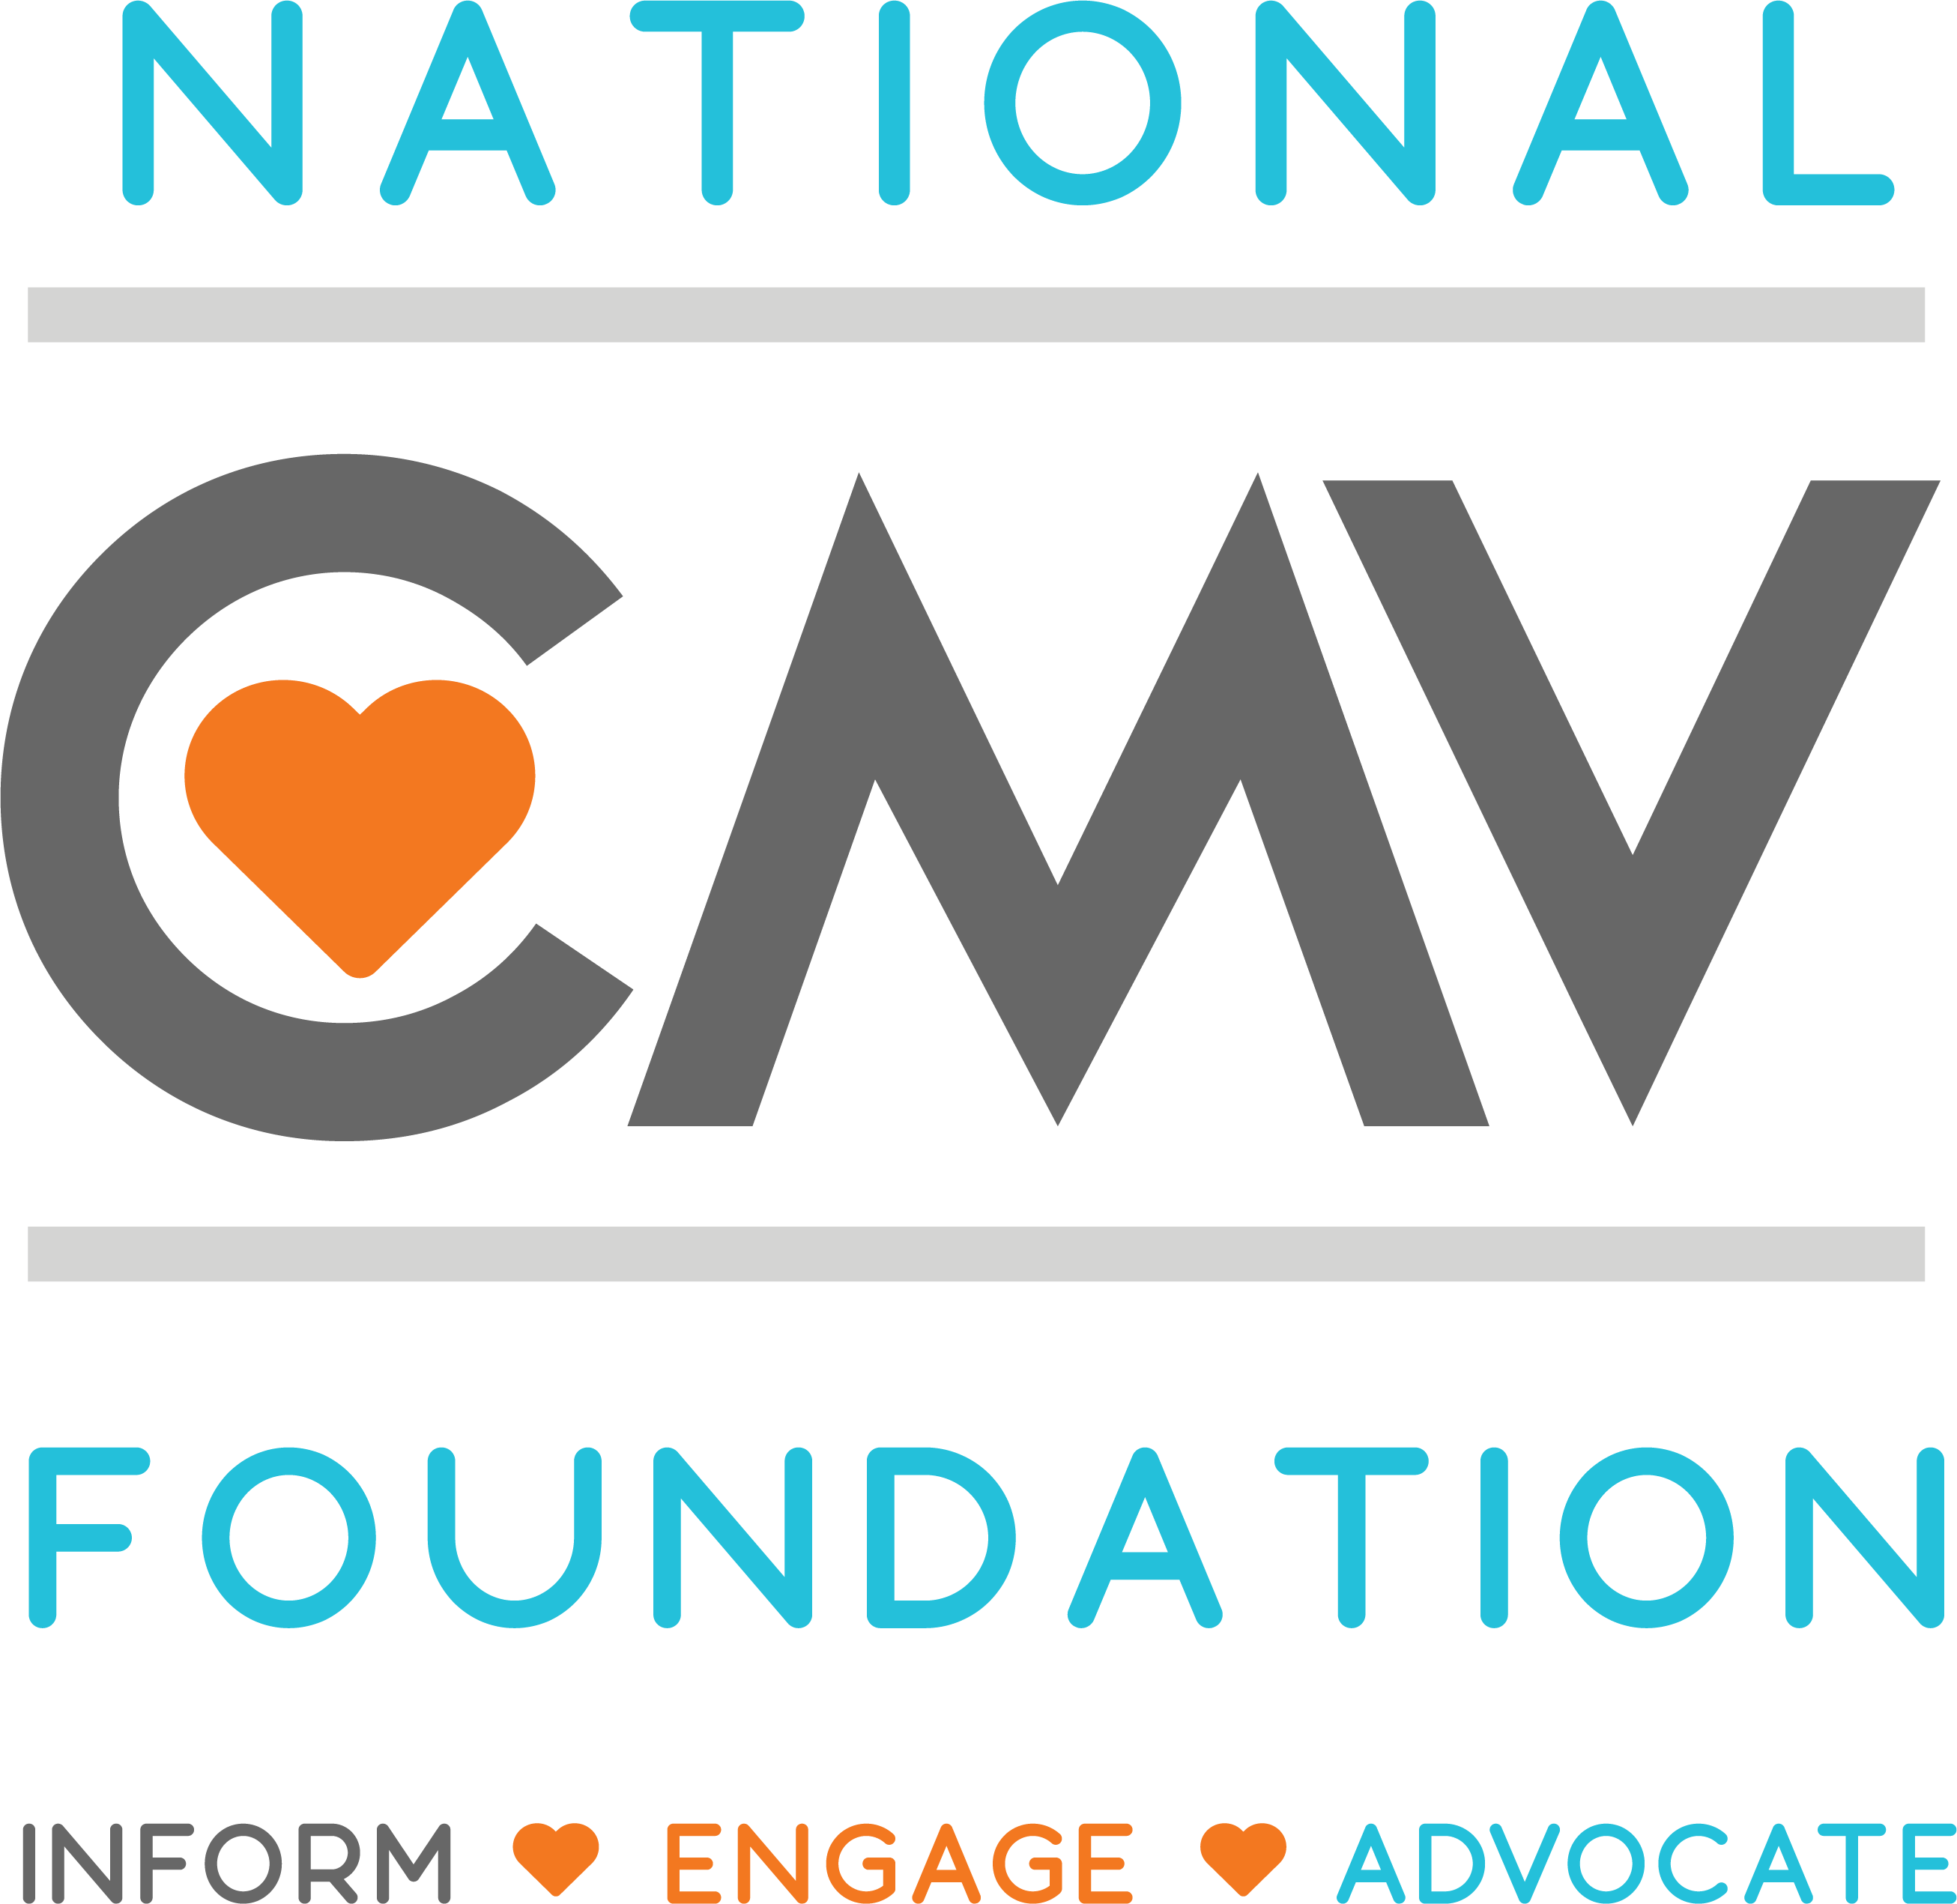 About the National CMV Foundation